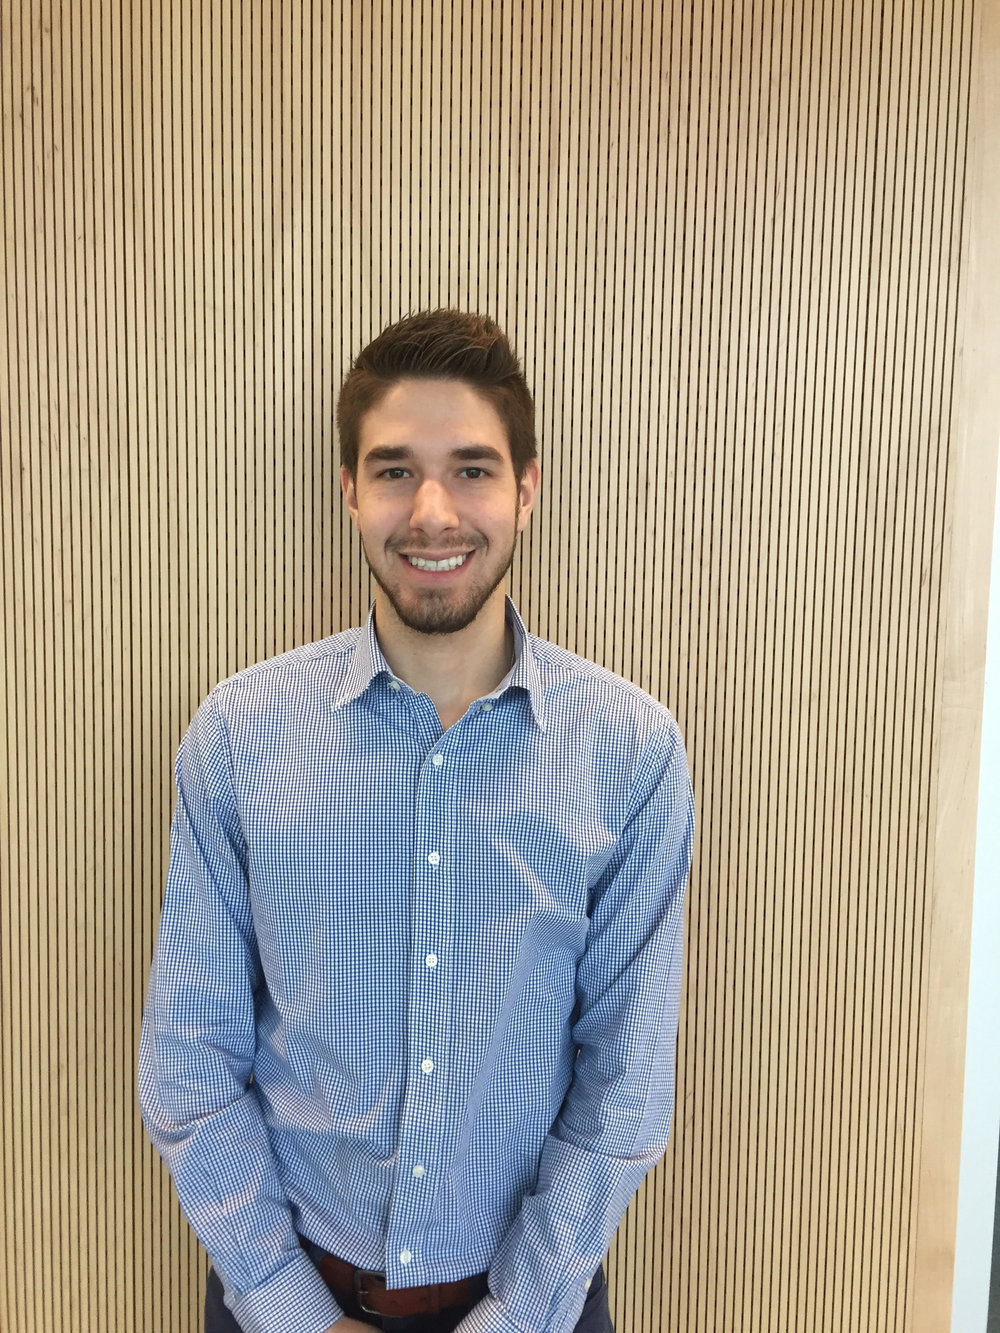 Clayton is a junior at the University of Pittsburgh, where he is majoring in economics and minoring in political science and administration of justice. At Pitt, he is a member of the Phi Eta Sigma academic honor society and is involved in Autism Speaks. In his free time, Clayton enjoys playing basketball, spending time with friends, and following professional sports. While at GTE, he hopes to improve his financial modeling skills, make new connections, and learn about various industries.